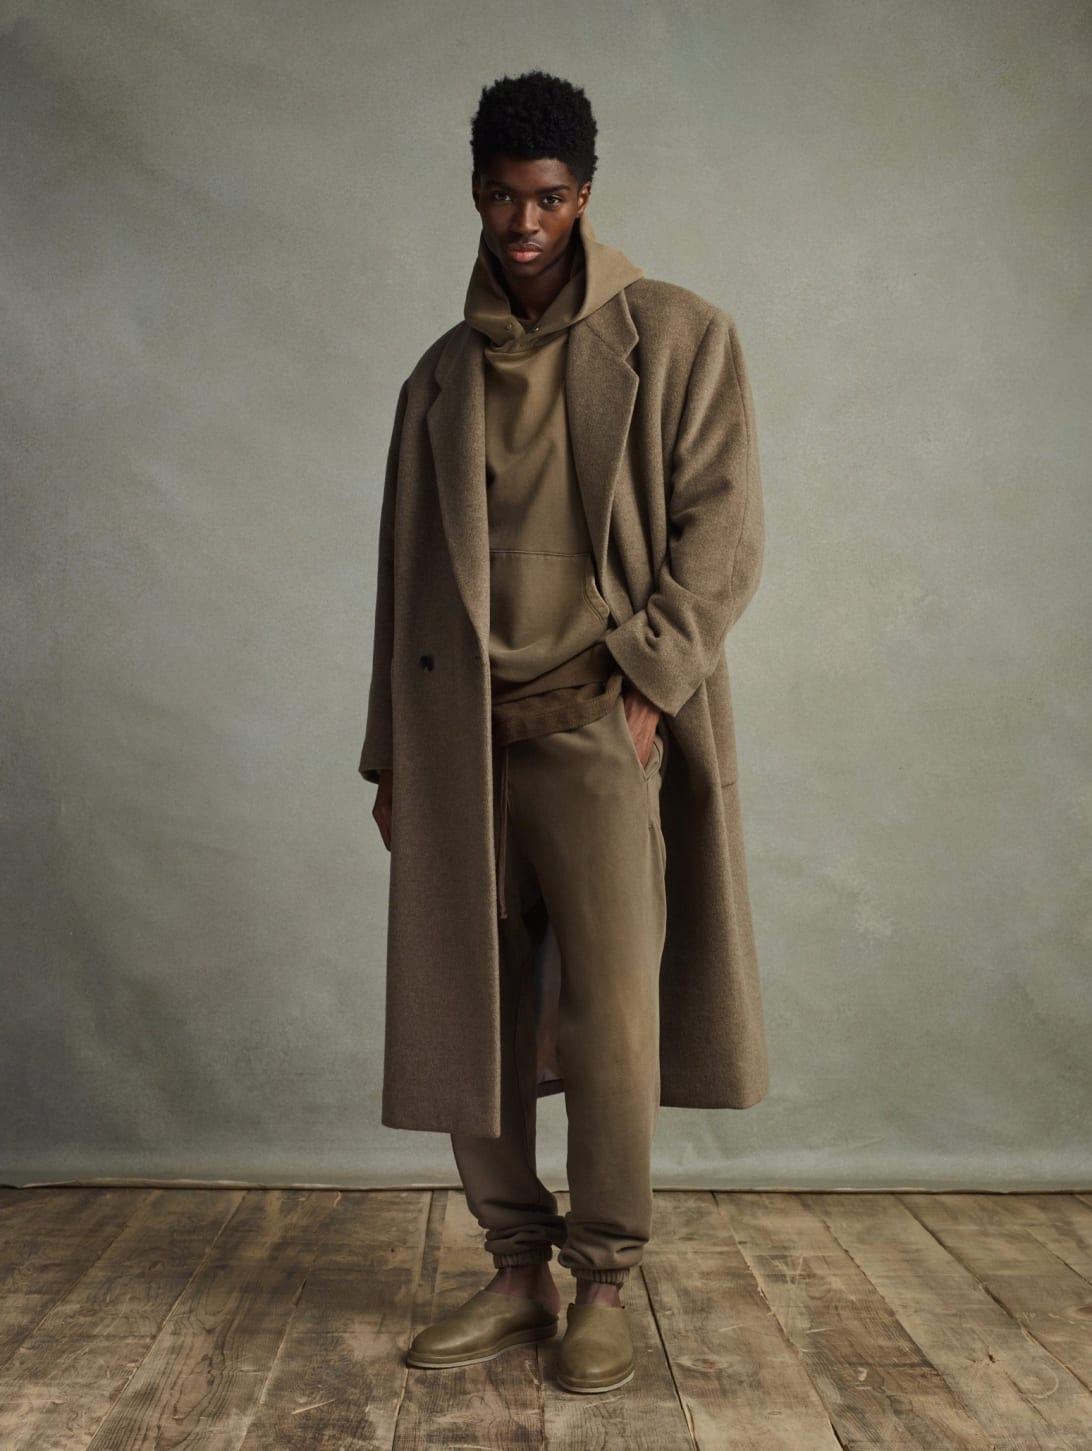 Seventh Collection Lookbook Look 02